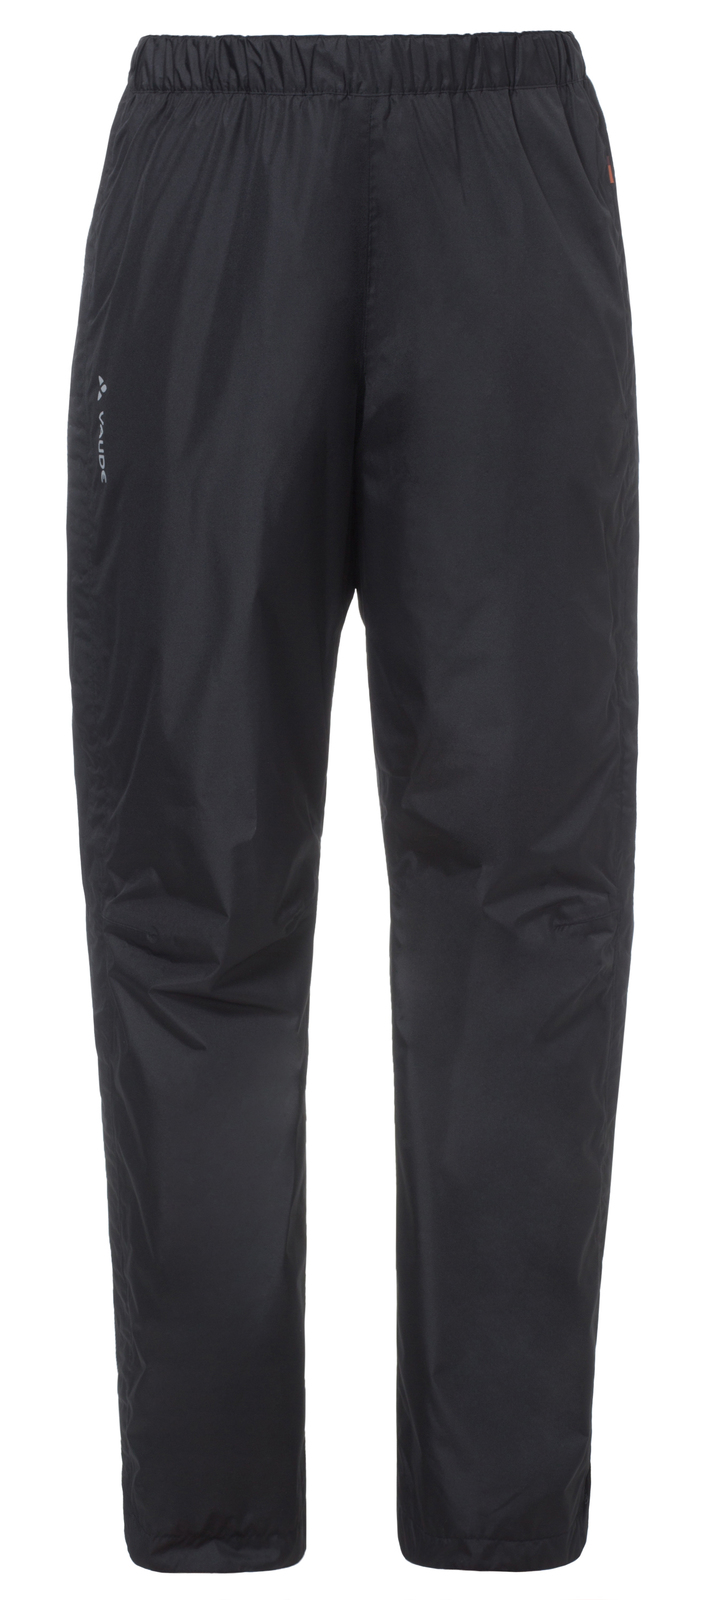 VAUDE Women´s Fluid Full-Zip Pants black Größe 34 - schneider-sports